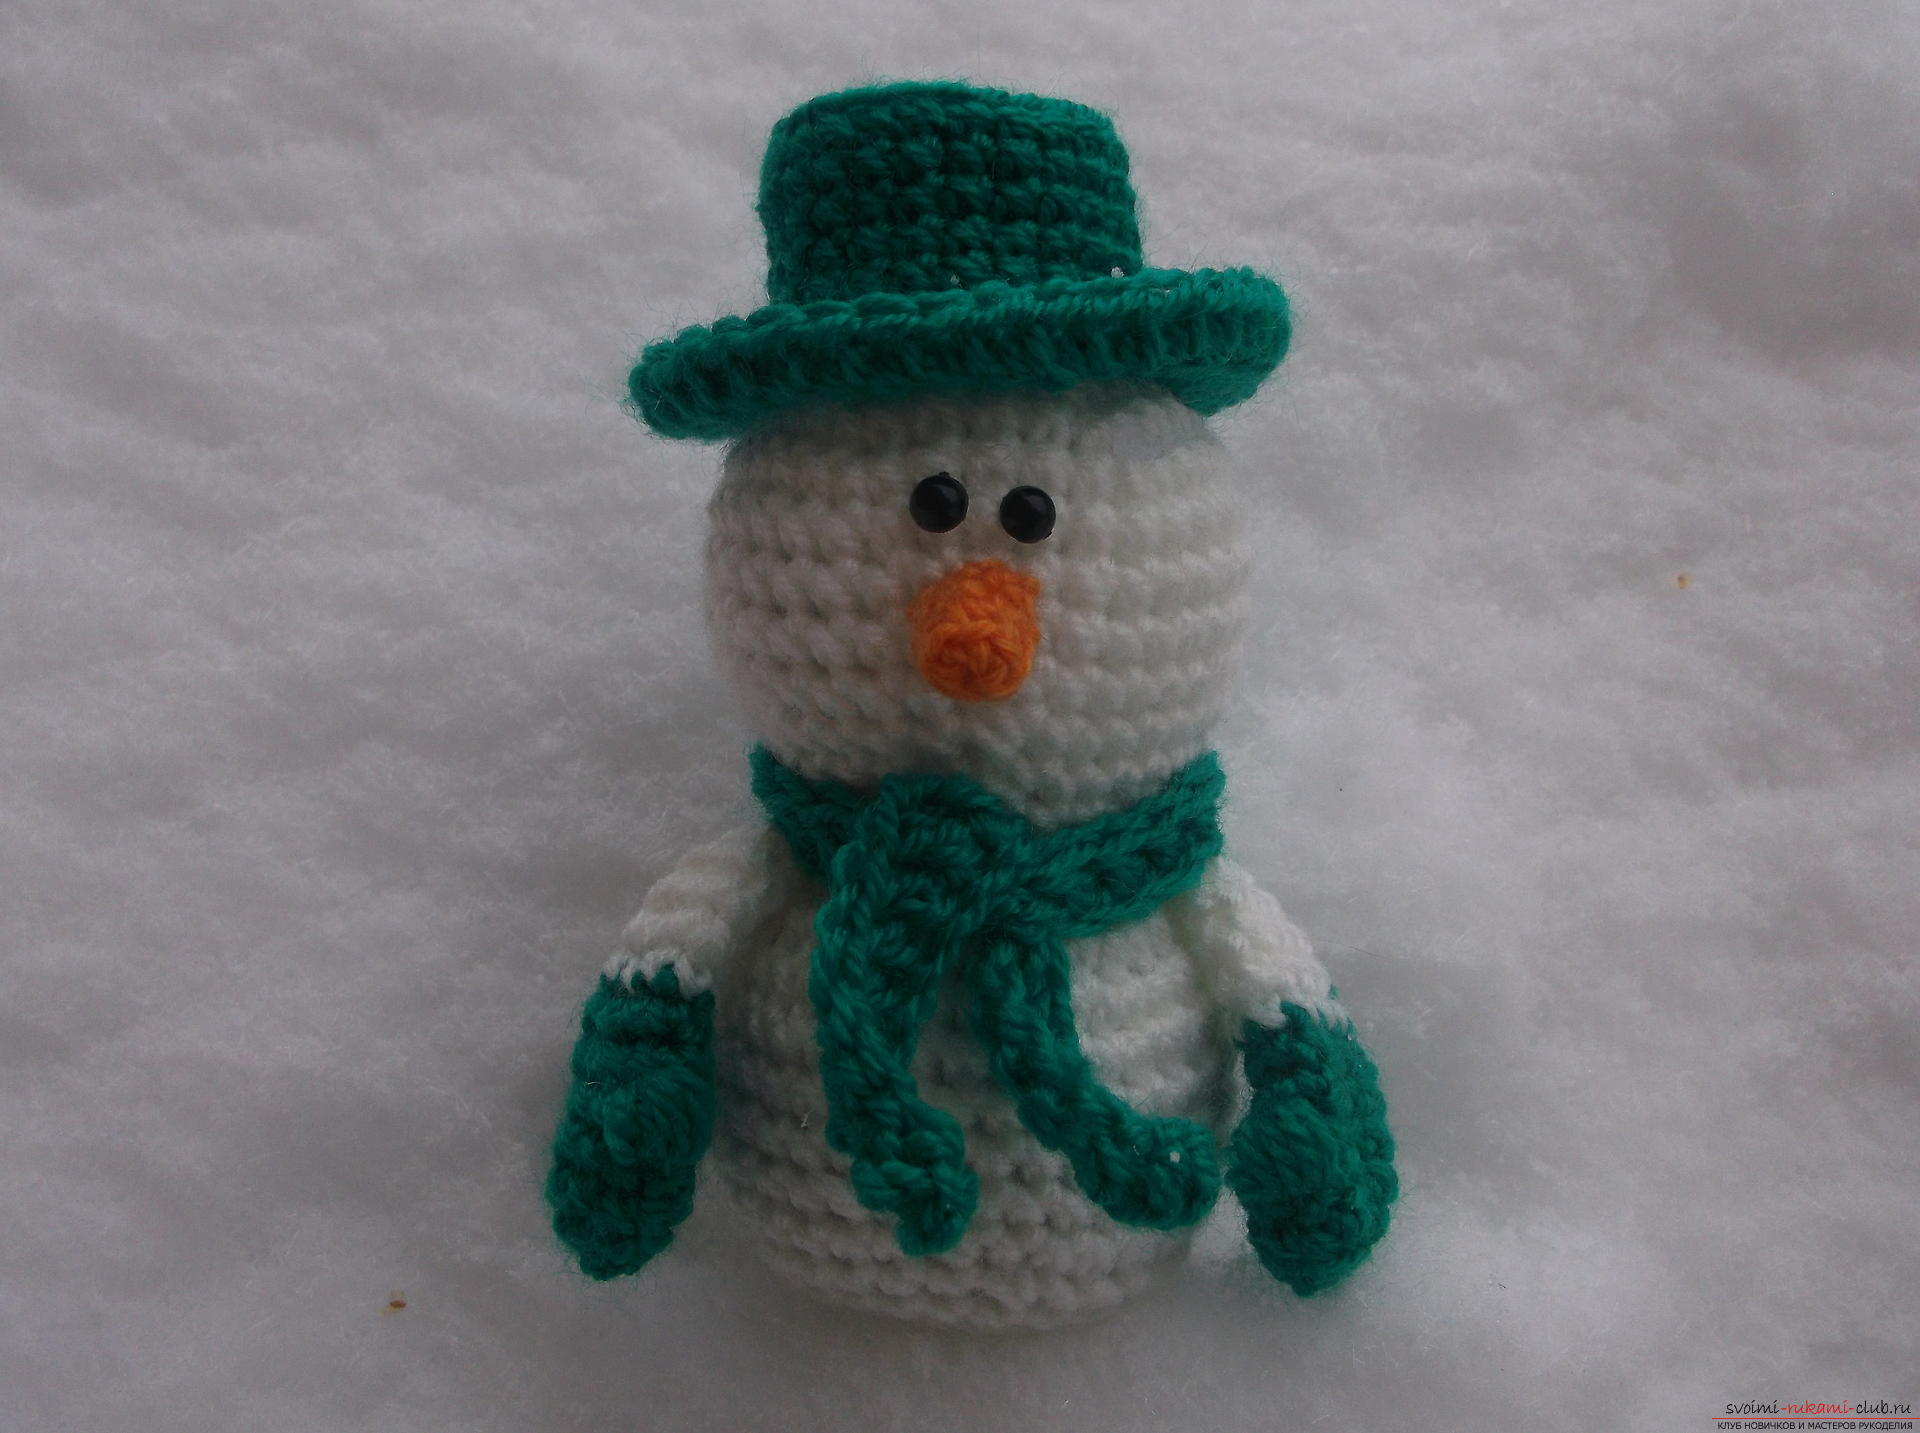 Masterclass with photos and descriptions will tell you how to make your own hands a childrens hand-crafted snowman